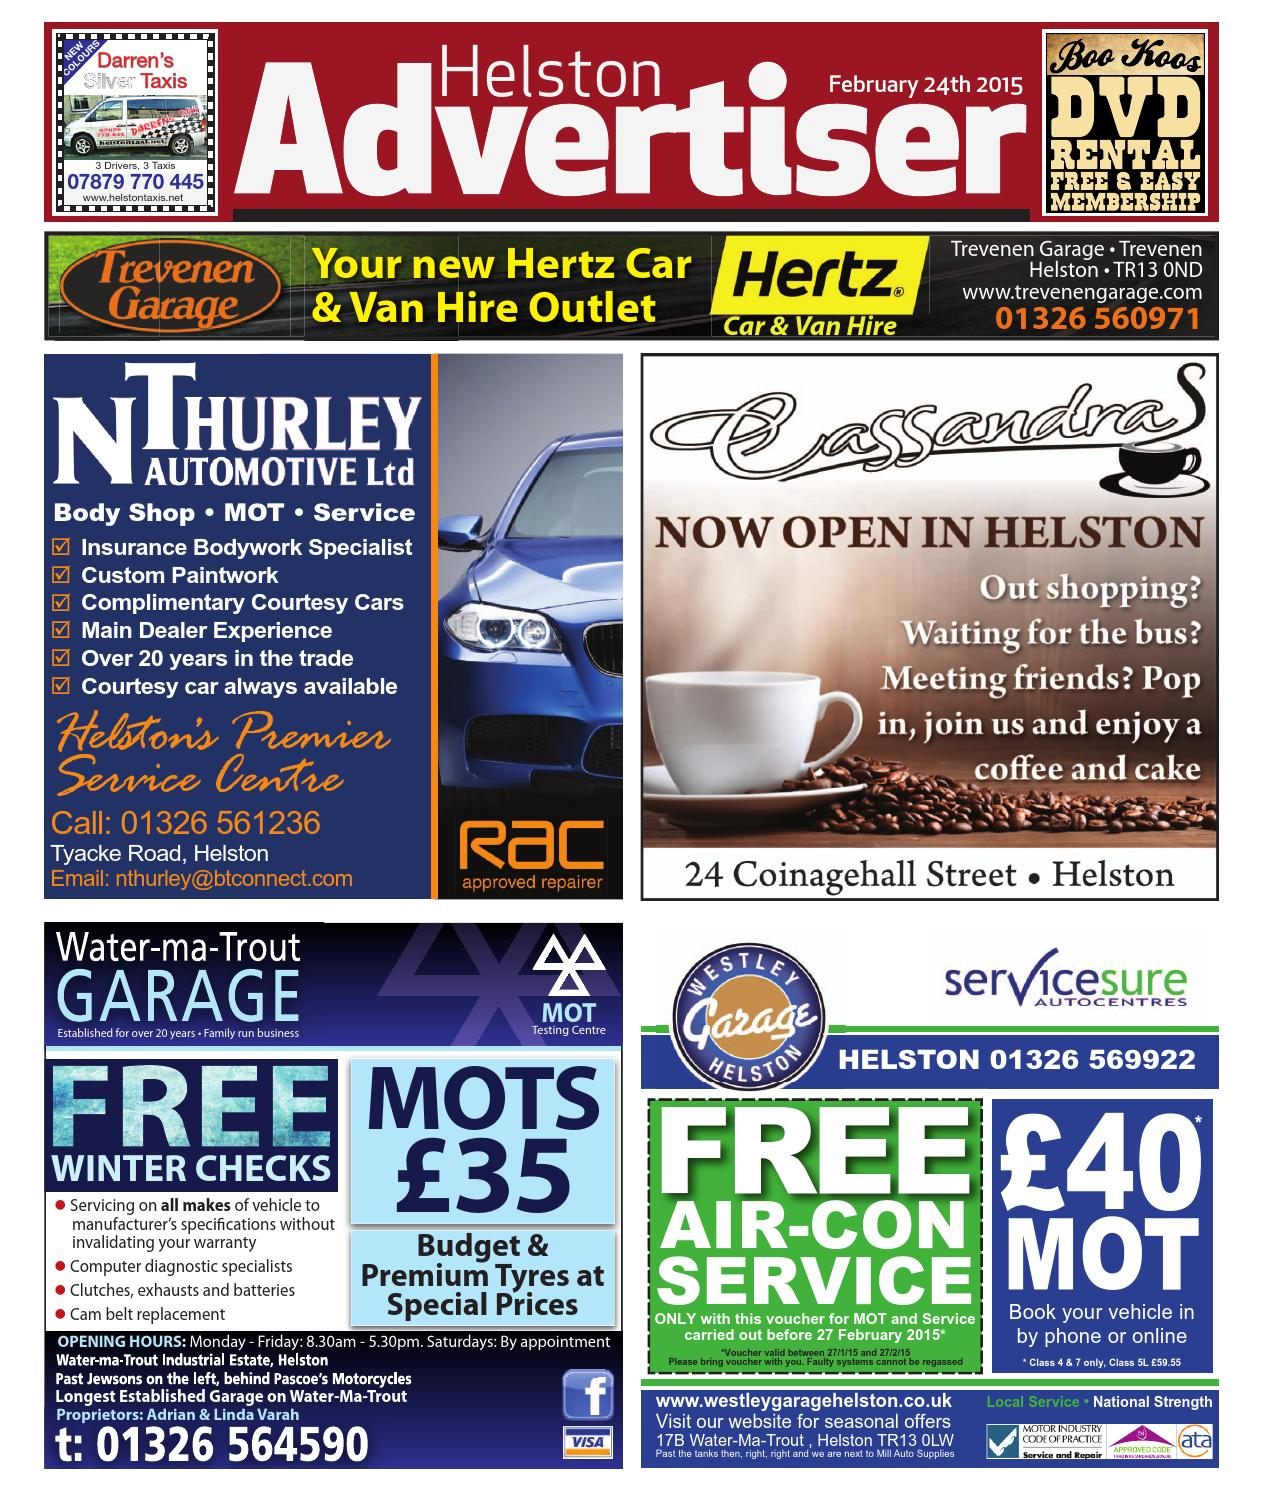 Helston advertiser february 24th 2015 by helston advertiser issuu fandeluxe Images